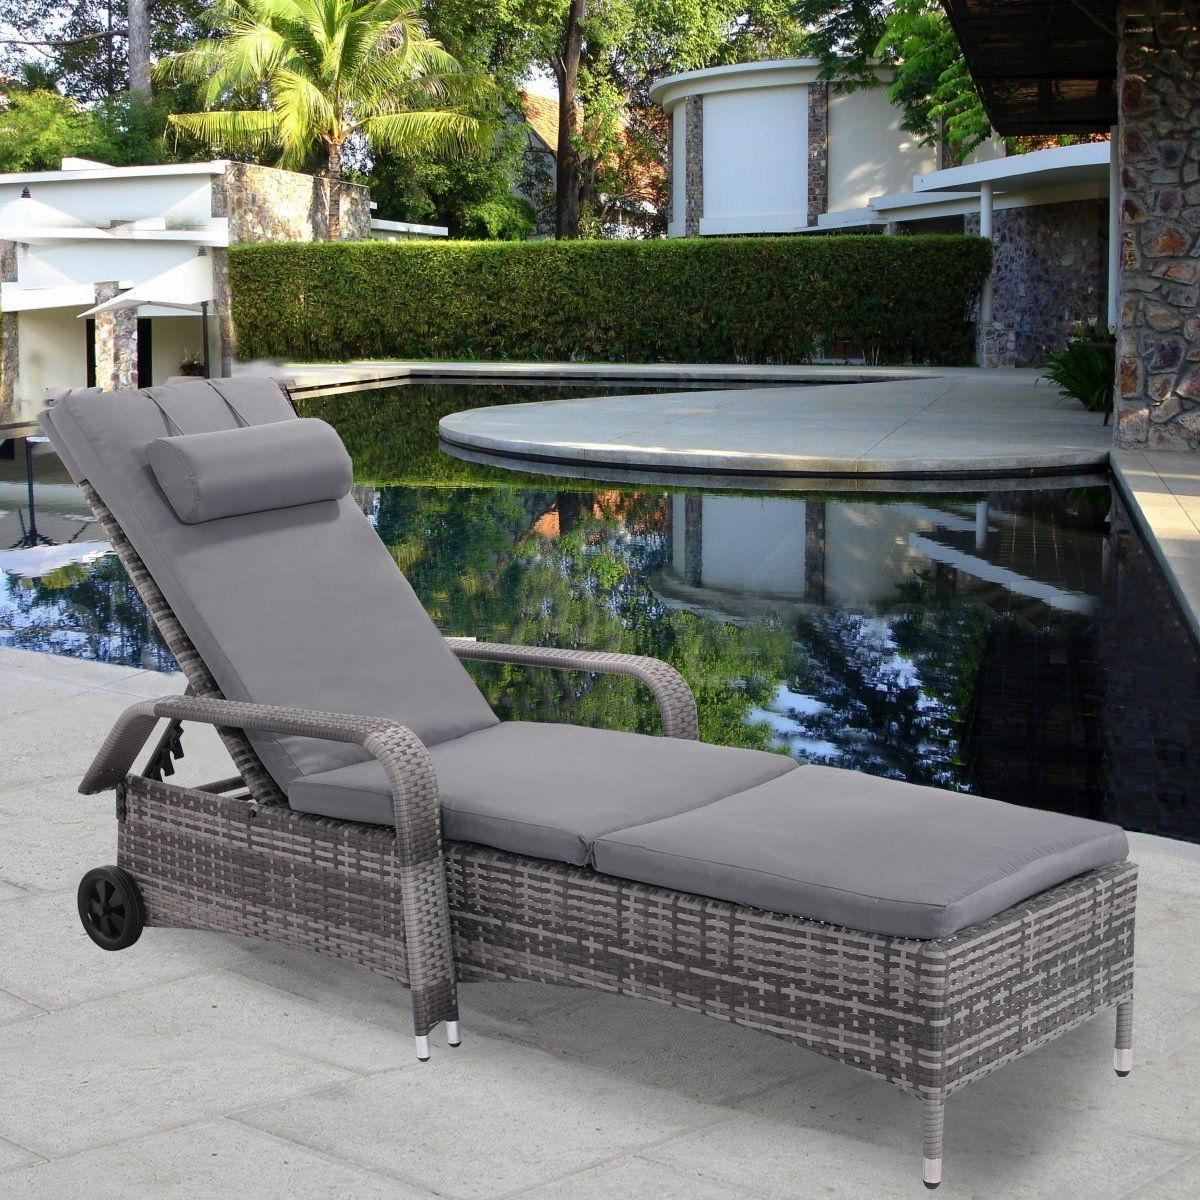 Wicker Chaise Back Adjustable Patio Lounge Chairs With Wheels Regarding Well Liked Tangkula Patio Chaise Lounge Chair With Armrest Headrest And (View 17 of 25)